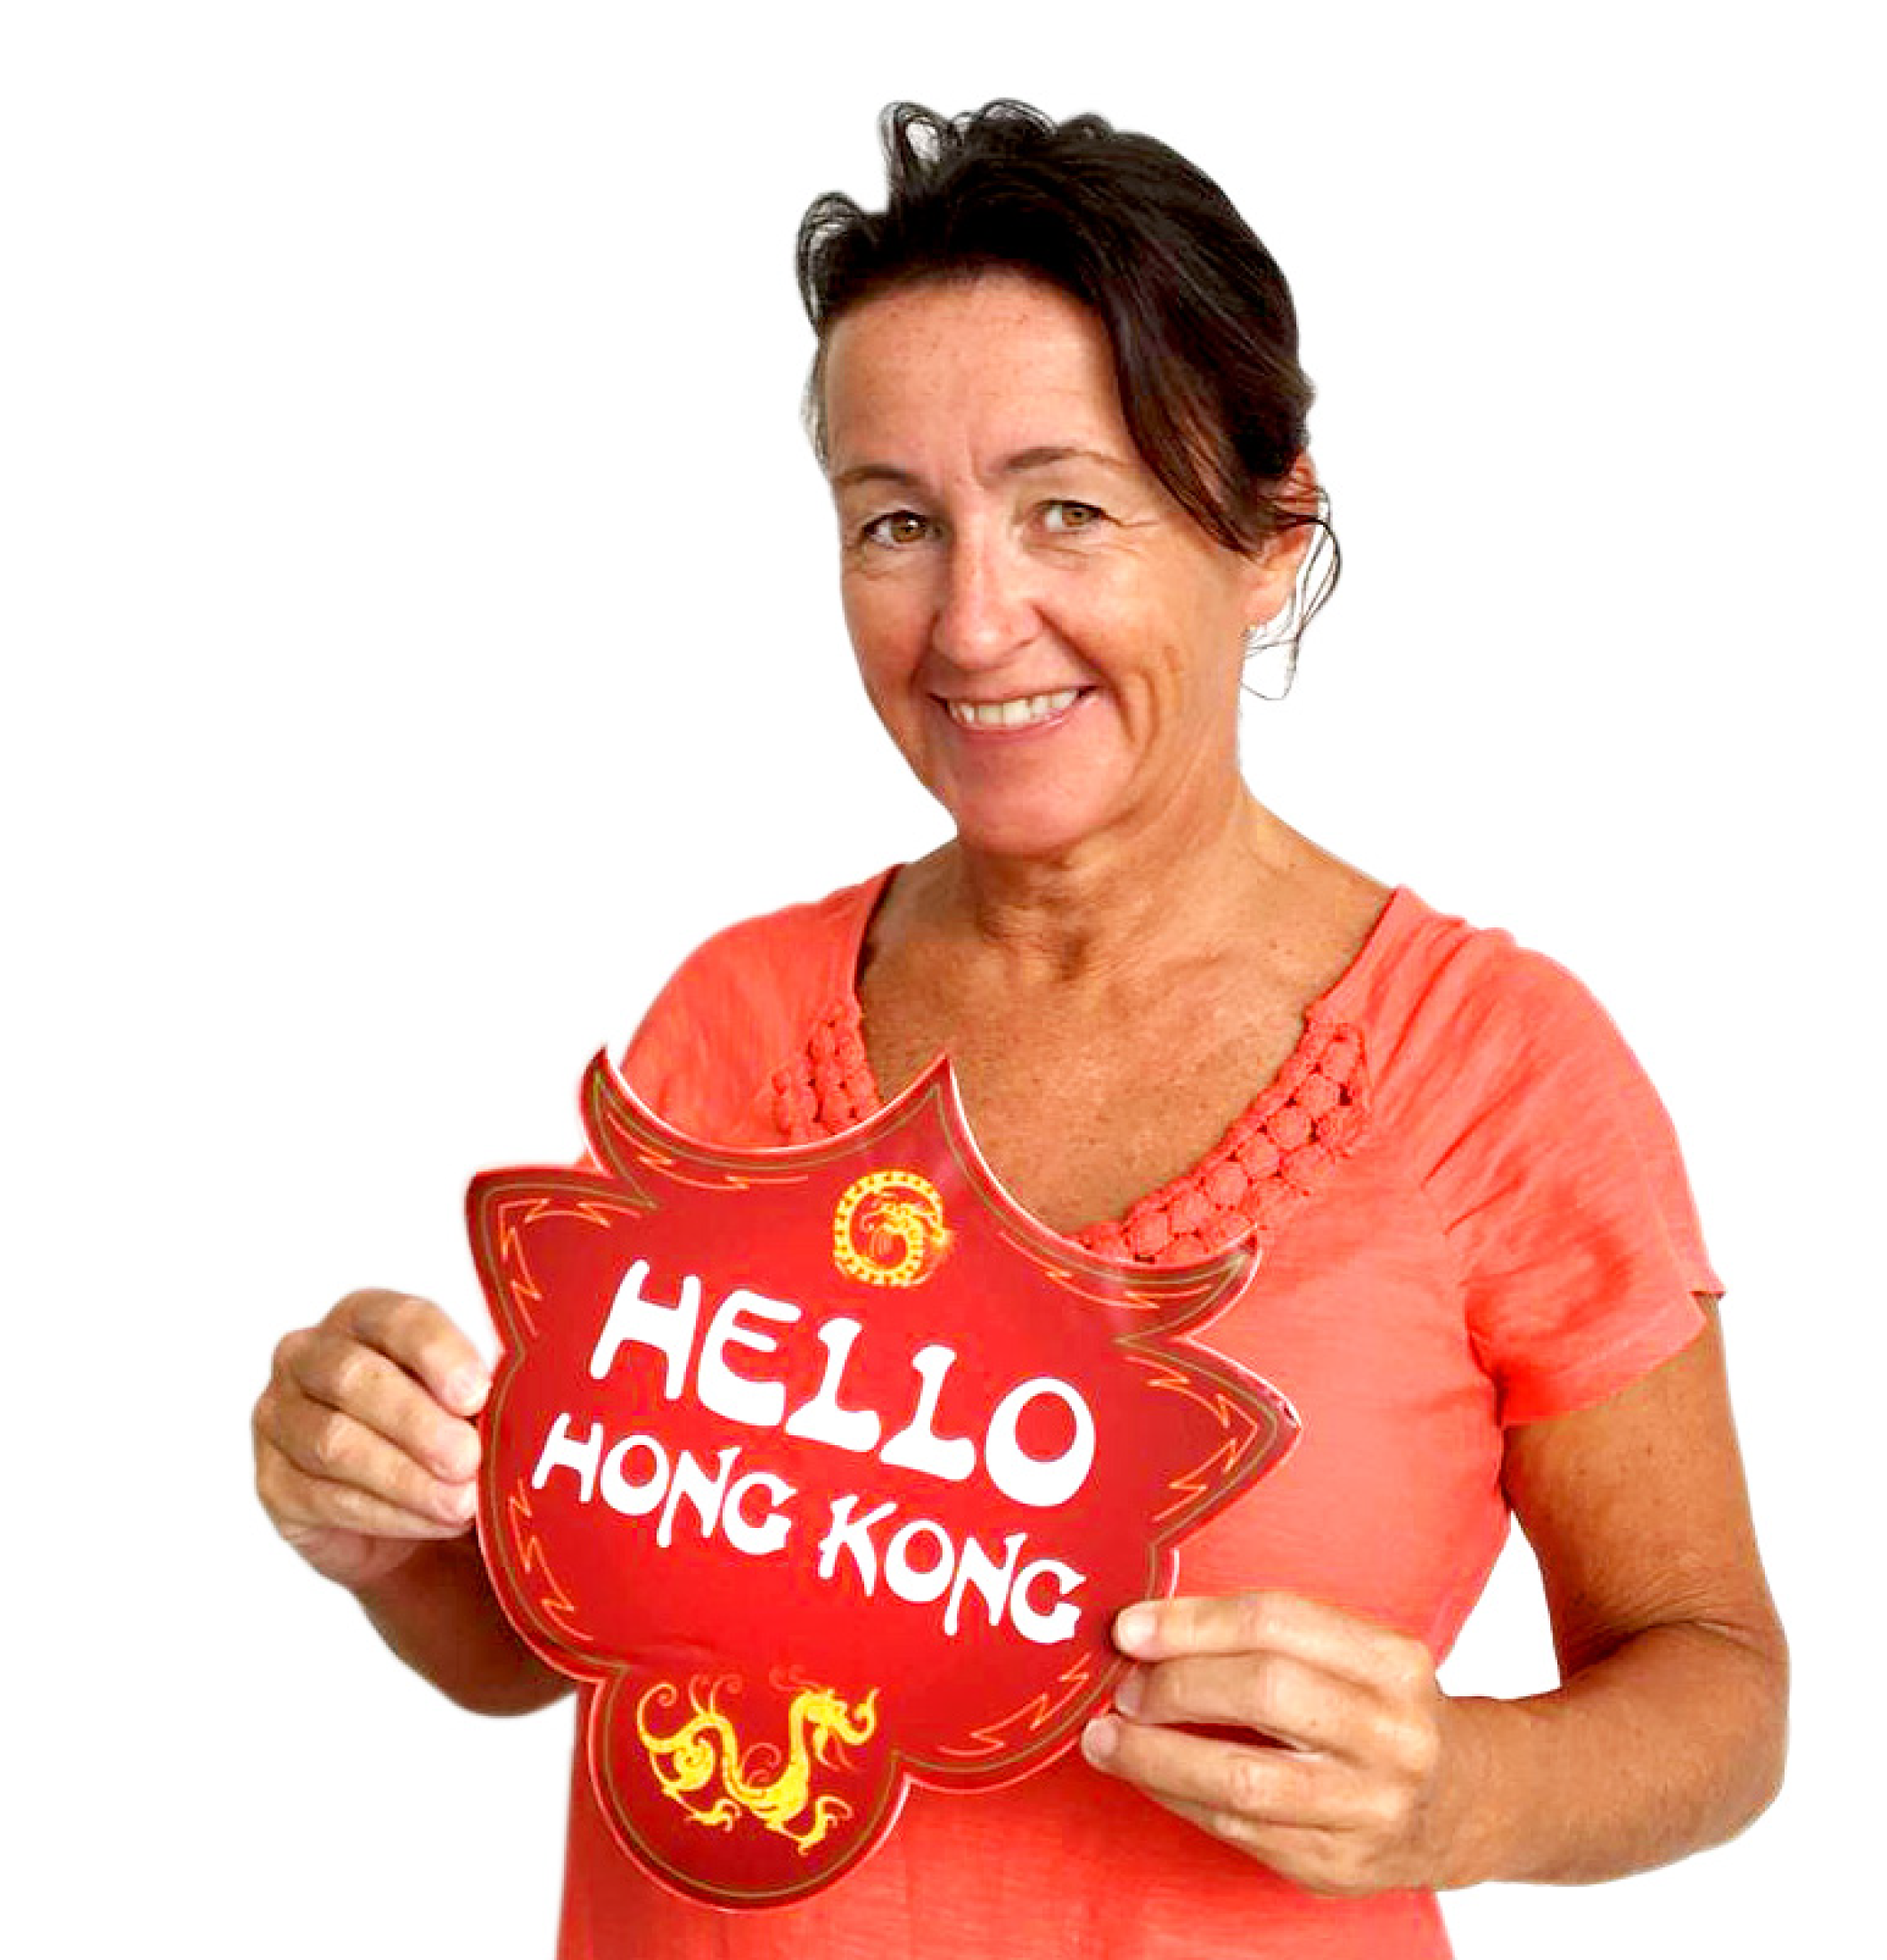 JANE - Hi, my name is Jane and I am originally from the UK. I first came to Hong Kong to live in 1997 and immediately fell in love with the city.I studied and worked in the Travel and Tourism industry for many years and then worked in the HR department of several large corporate organisations before joining Hello Hong Kong as a tour guide.I have always been interested in travel and different countries and cultures so as a tour guide I enjoy meeting people and hearing about their countries and travel experiences, as well as being able to show people the diversity that Hong Kong offers. Every day in Hong Kong is different and it is very enjoyable to be able to show guests a variety of experiences – great food, fascinating history and a vast amount of local culture.In my free time, I enjoy exploring and hiking different parts of Hong Kong and particularly where I live on Lantau Island. I look forward to showing you the best that Hong Kong has to offer on a Hello Hong Kong Tour.